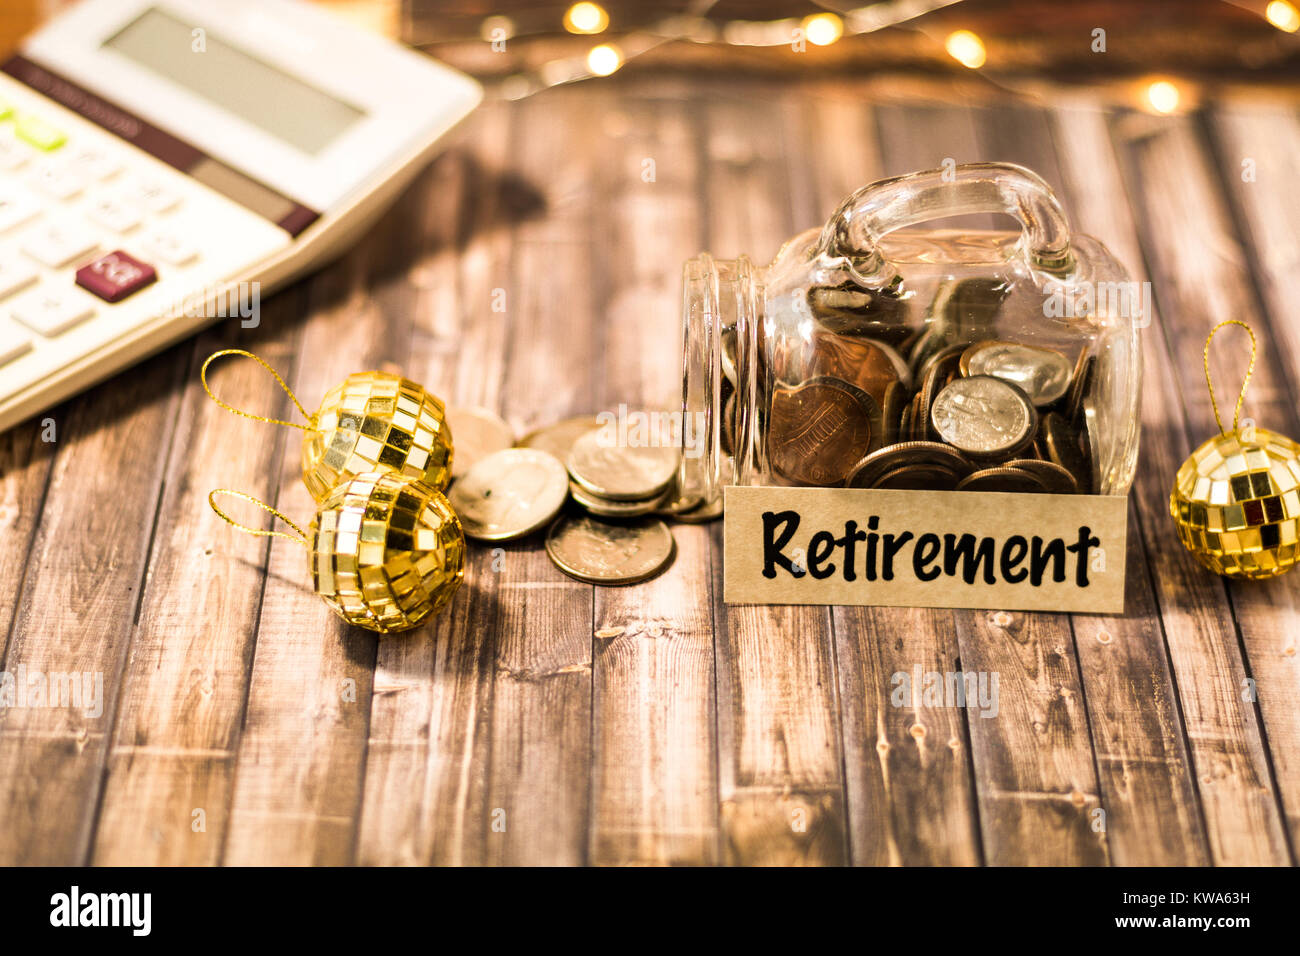 Retirement money jar savings motivational concept on wooden board - Stock Image